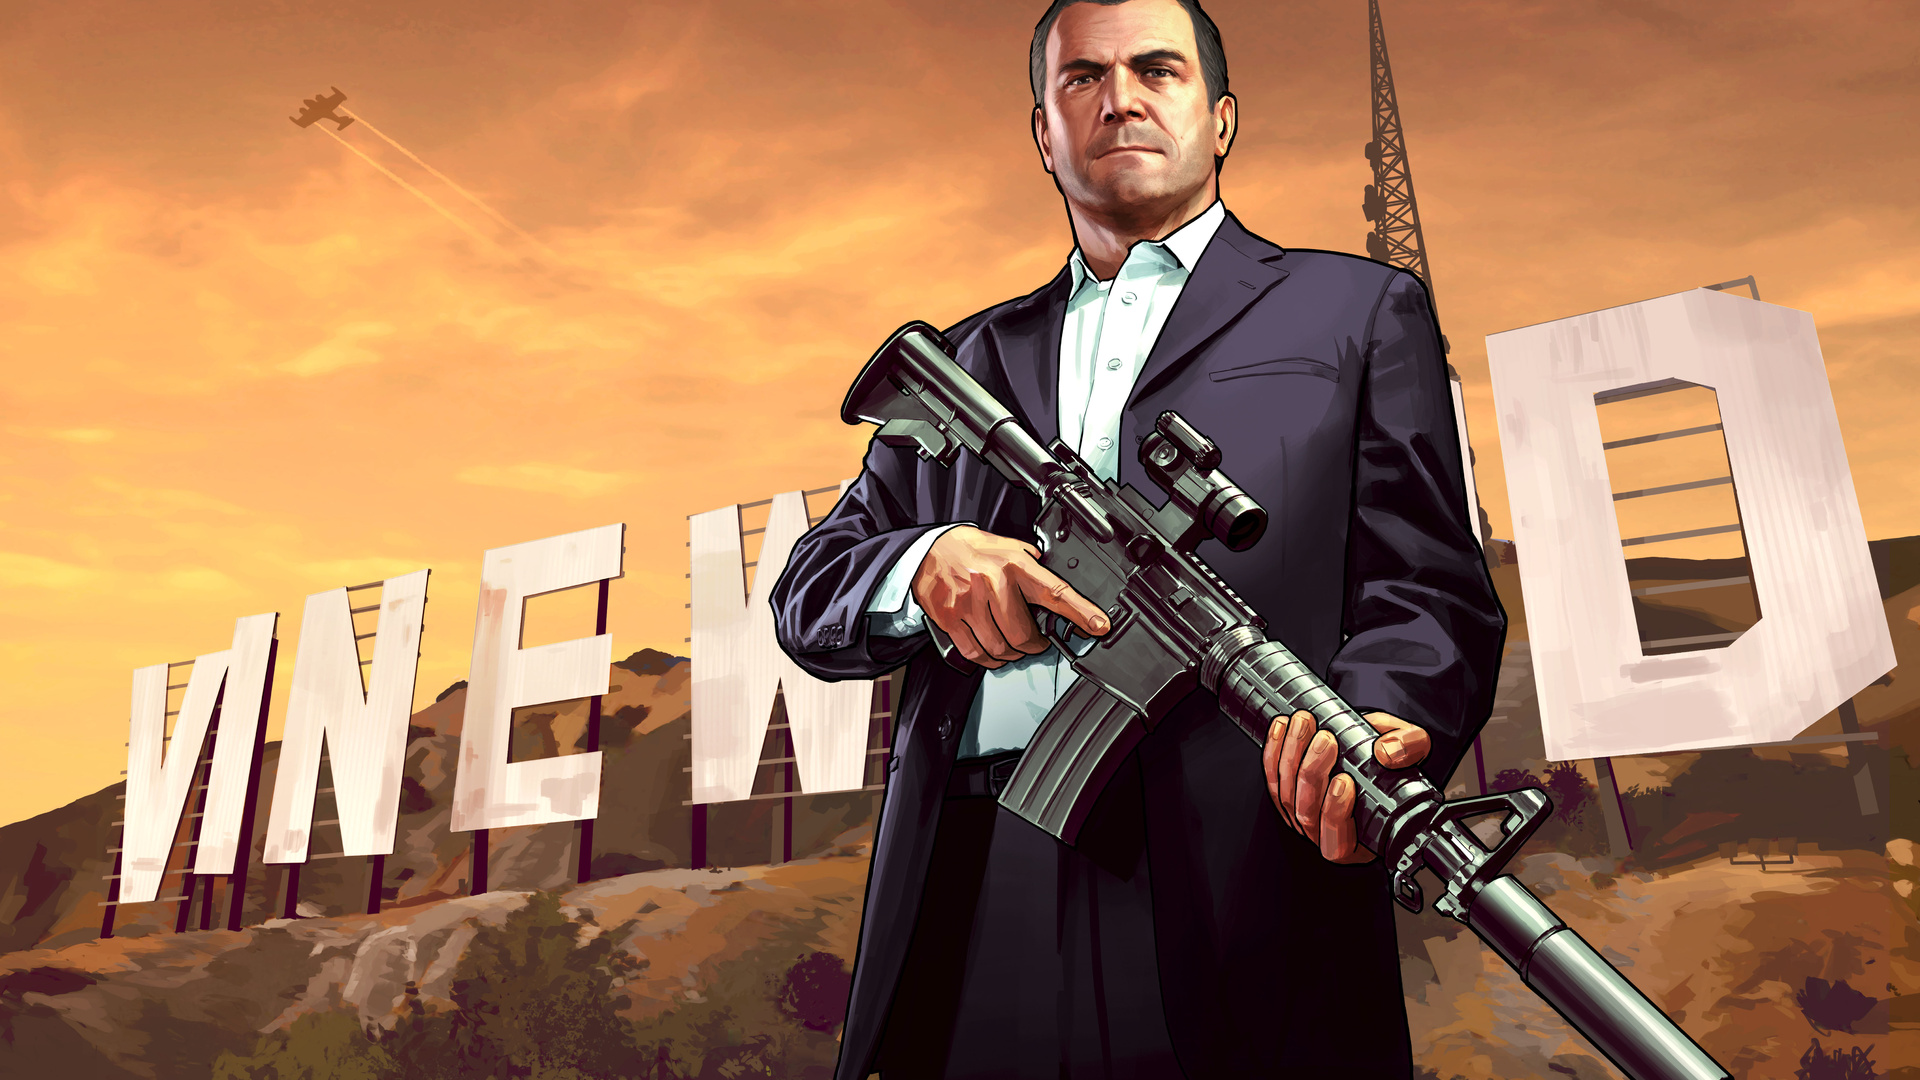 1920x1080 Michael Gta 5 5k Laptop Full Hd 1080p Hd 4k Wallpapers Images Backgrounds Photos And Pictures